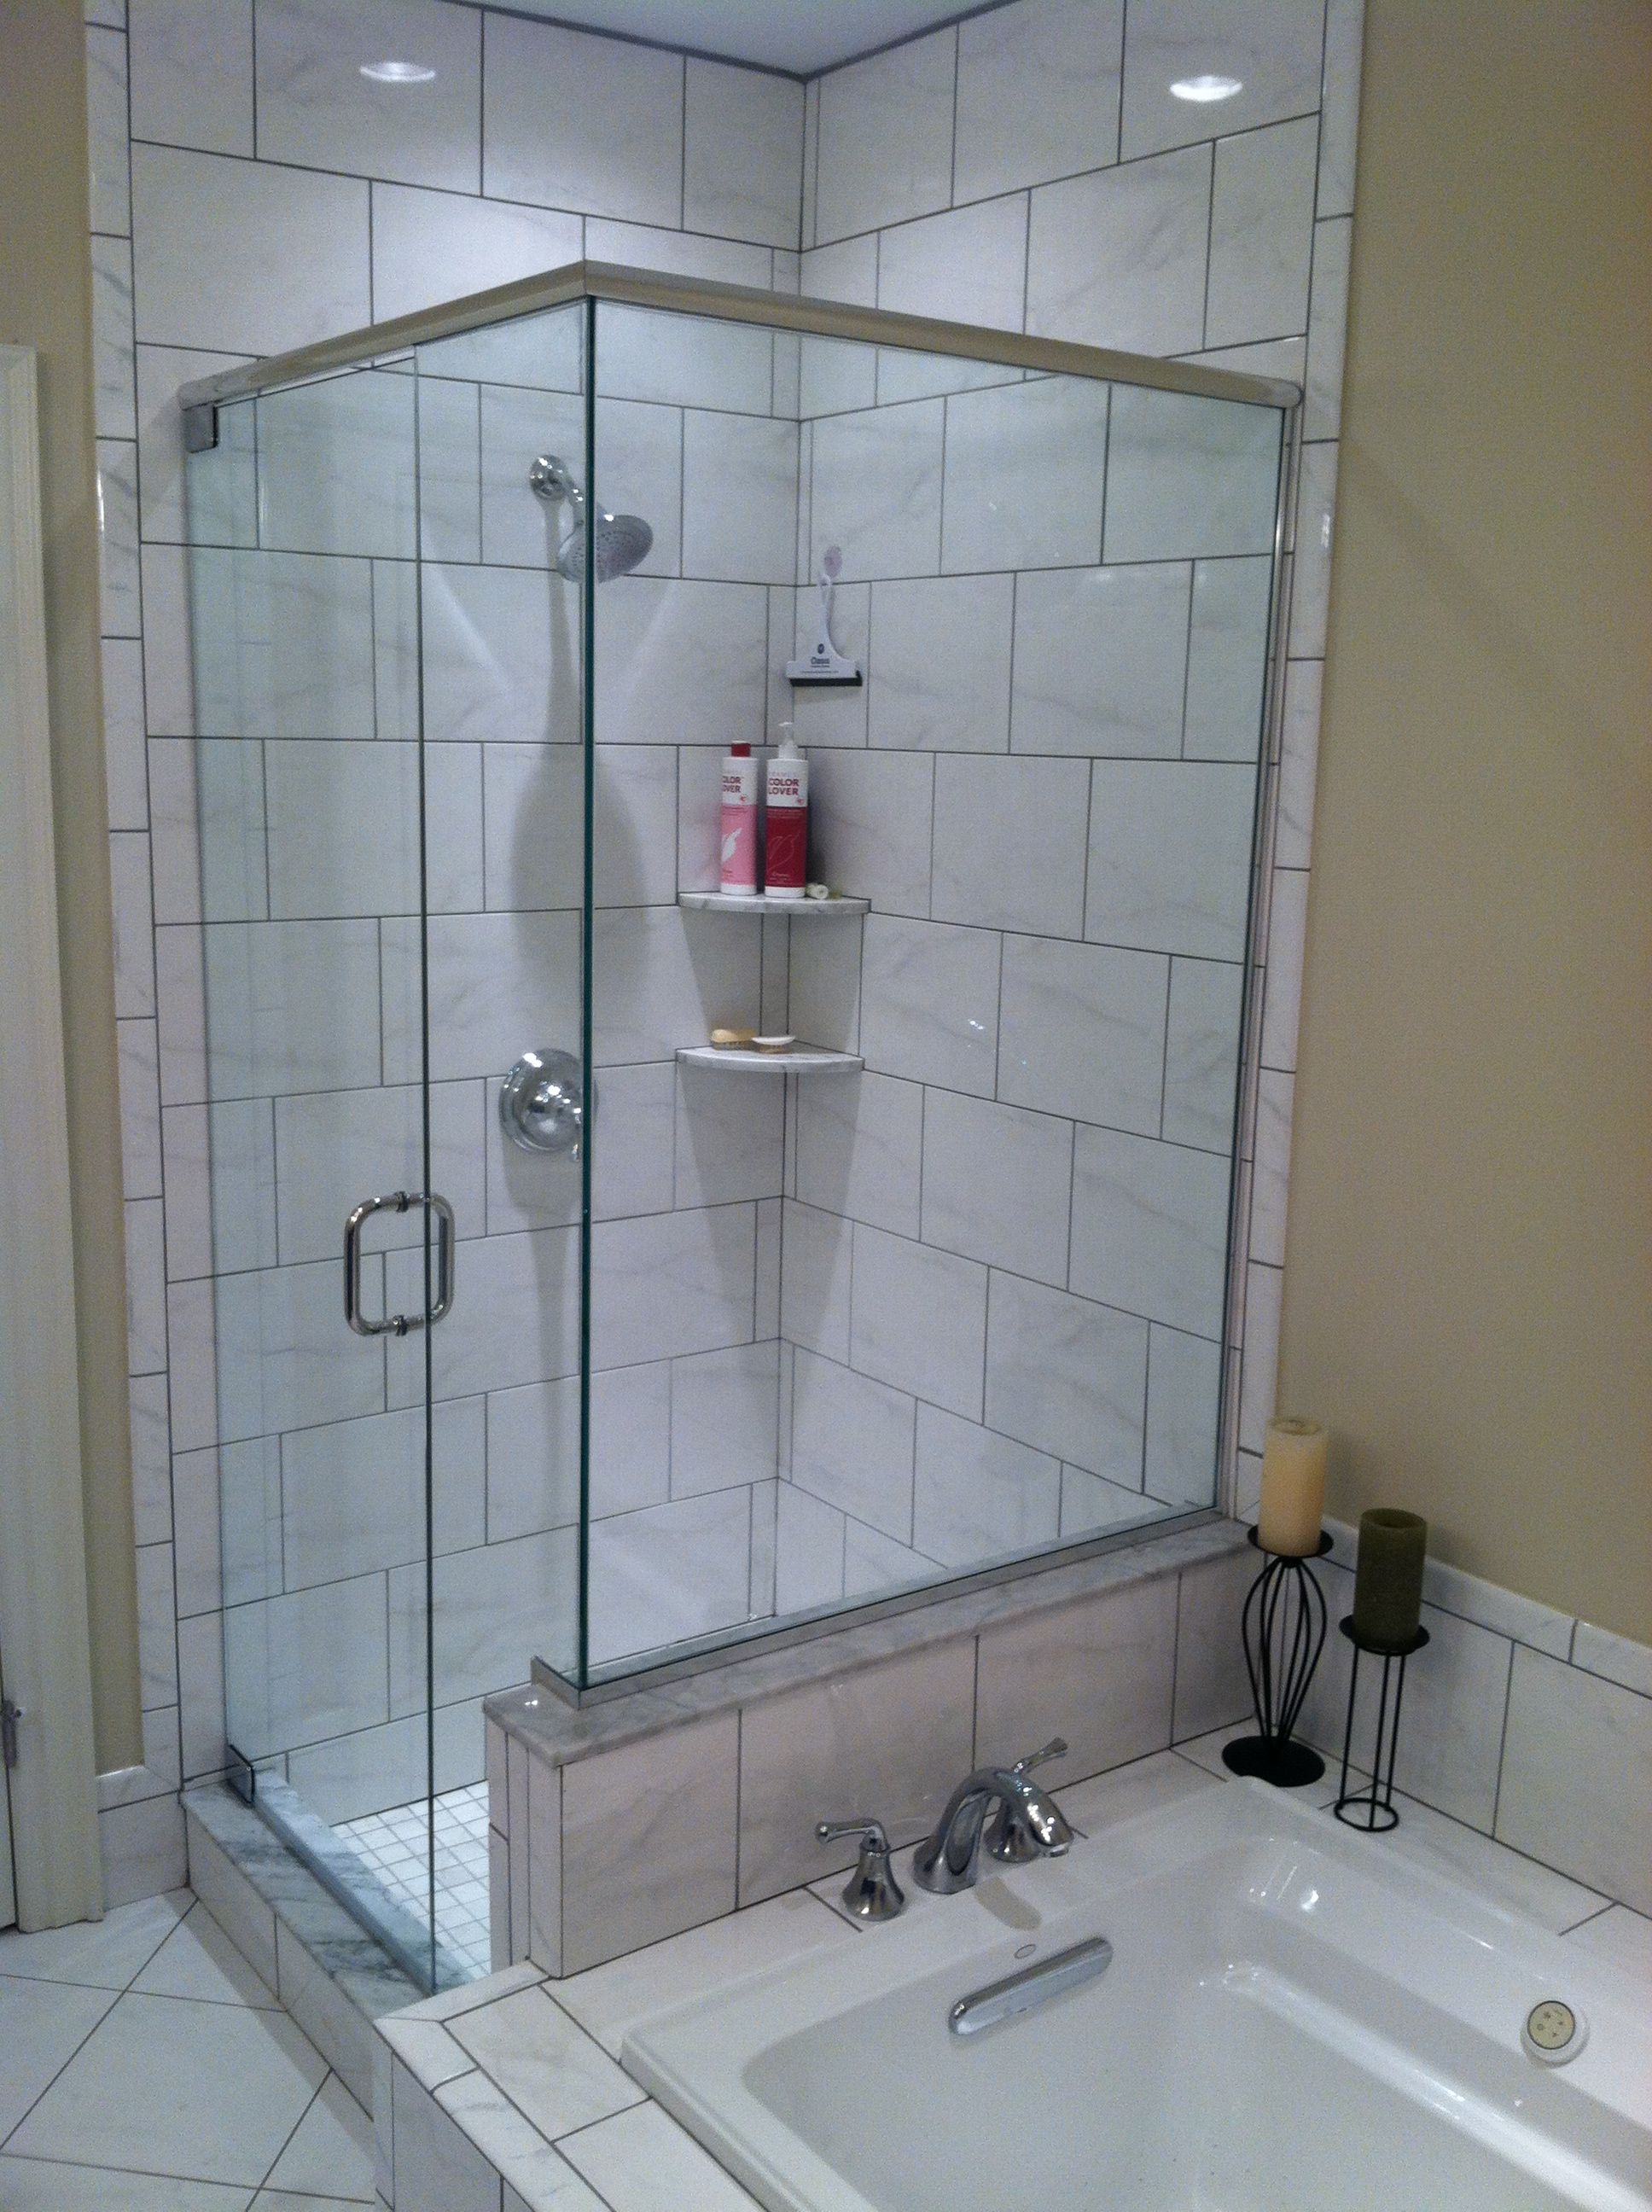 GLASS-TO-WALL HINGES are attached to this tile wall for a frameless ...